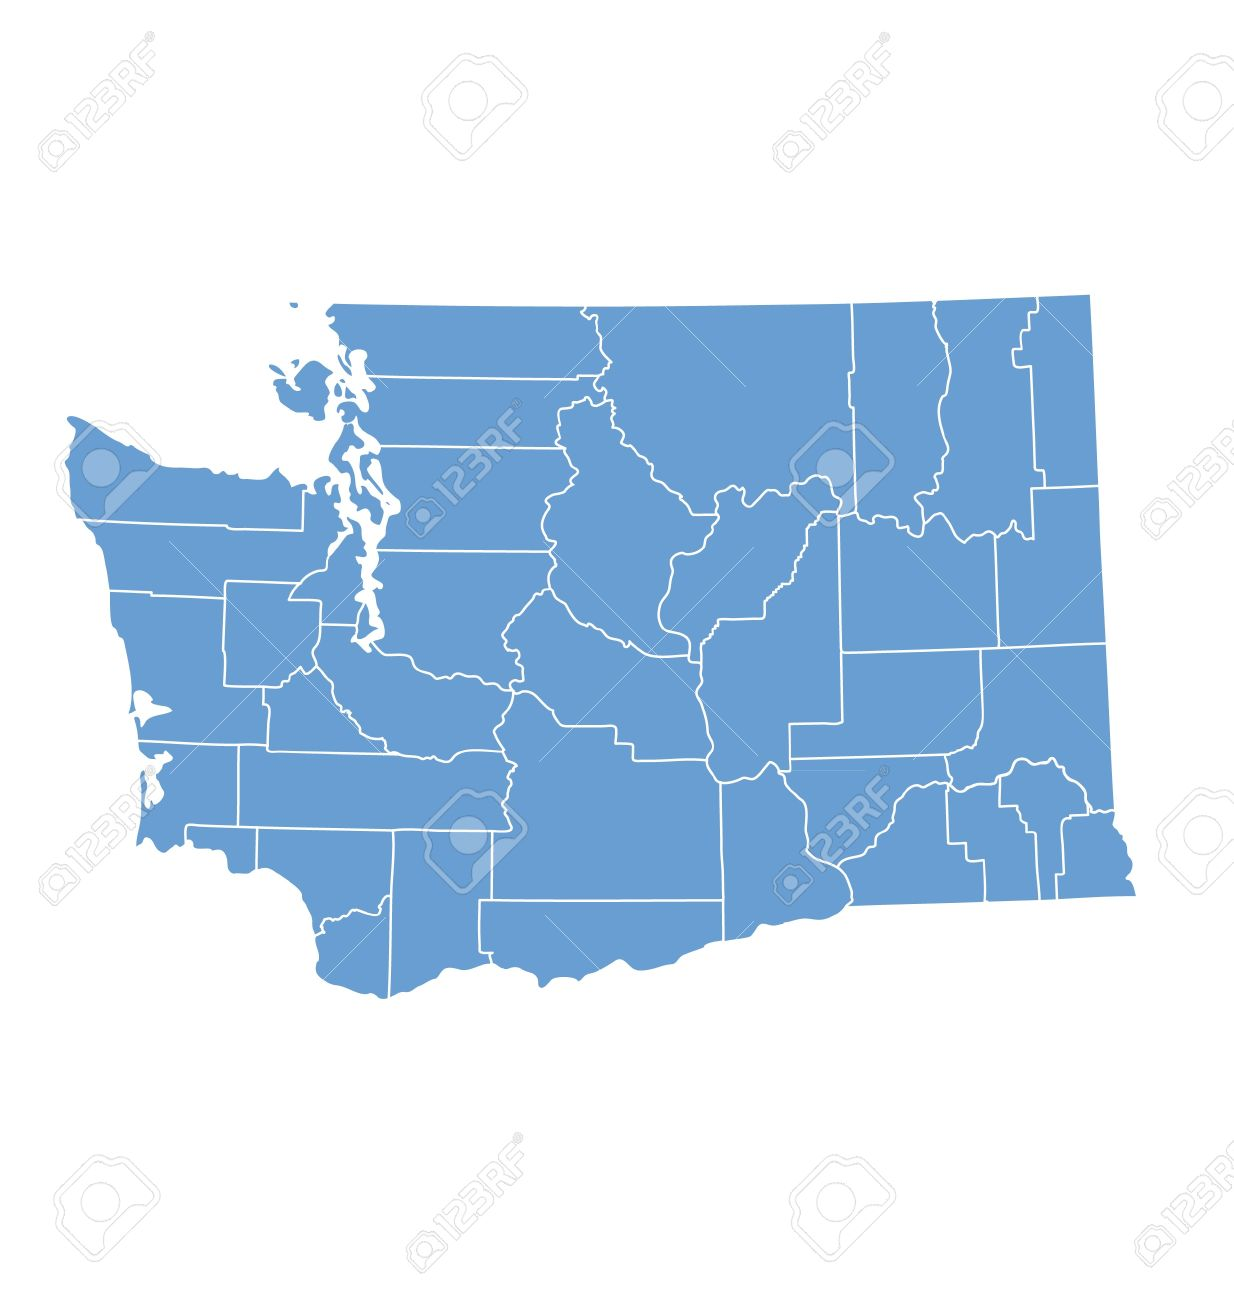 Counties Washington State Map.Washington State Map By Counties Royalty Free Cliparts Vectors And